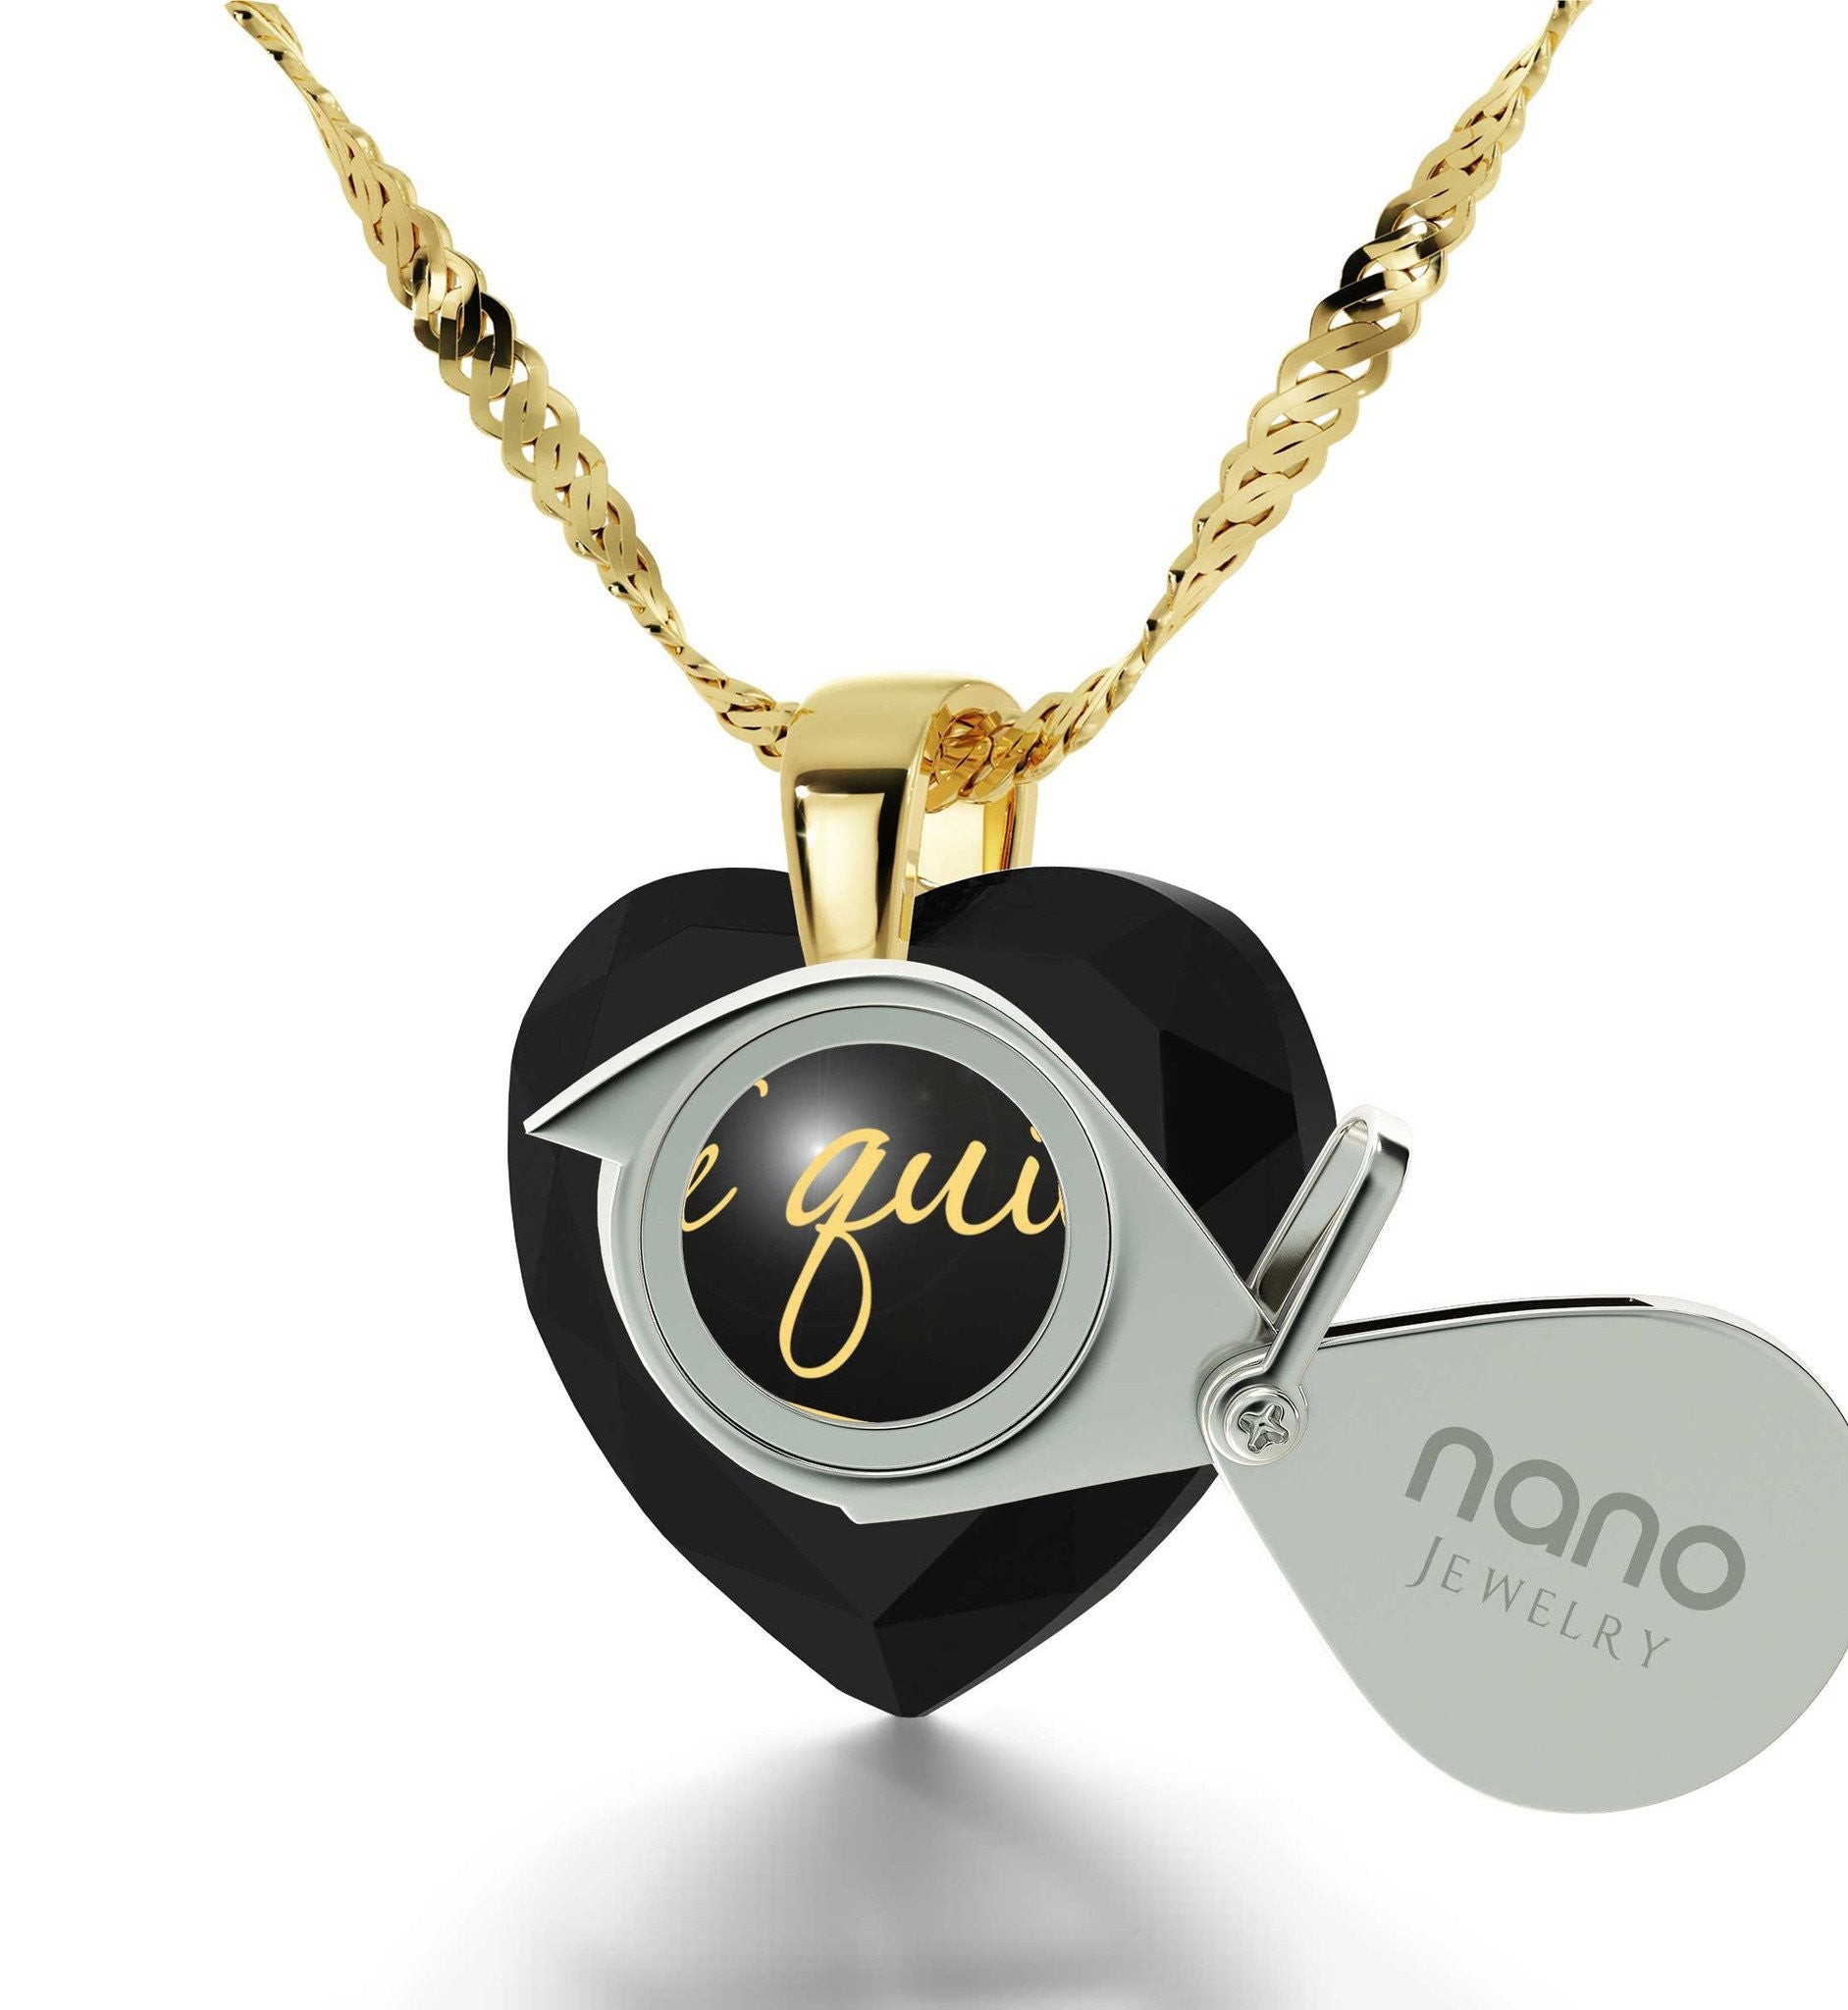 """Birthday Present for Girlfriend,""TeQuiero""""I Love You"" in Spanish, Heart Necklace by Nano Jewelry"""